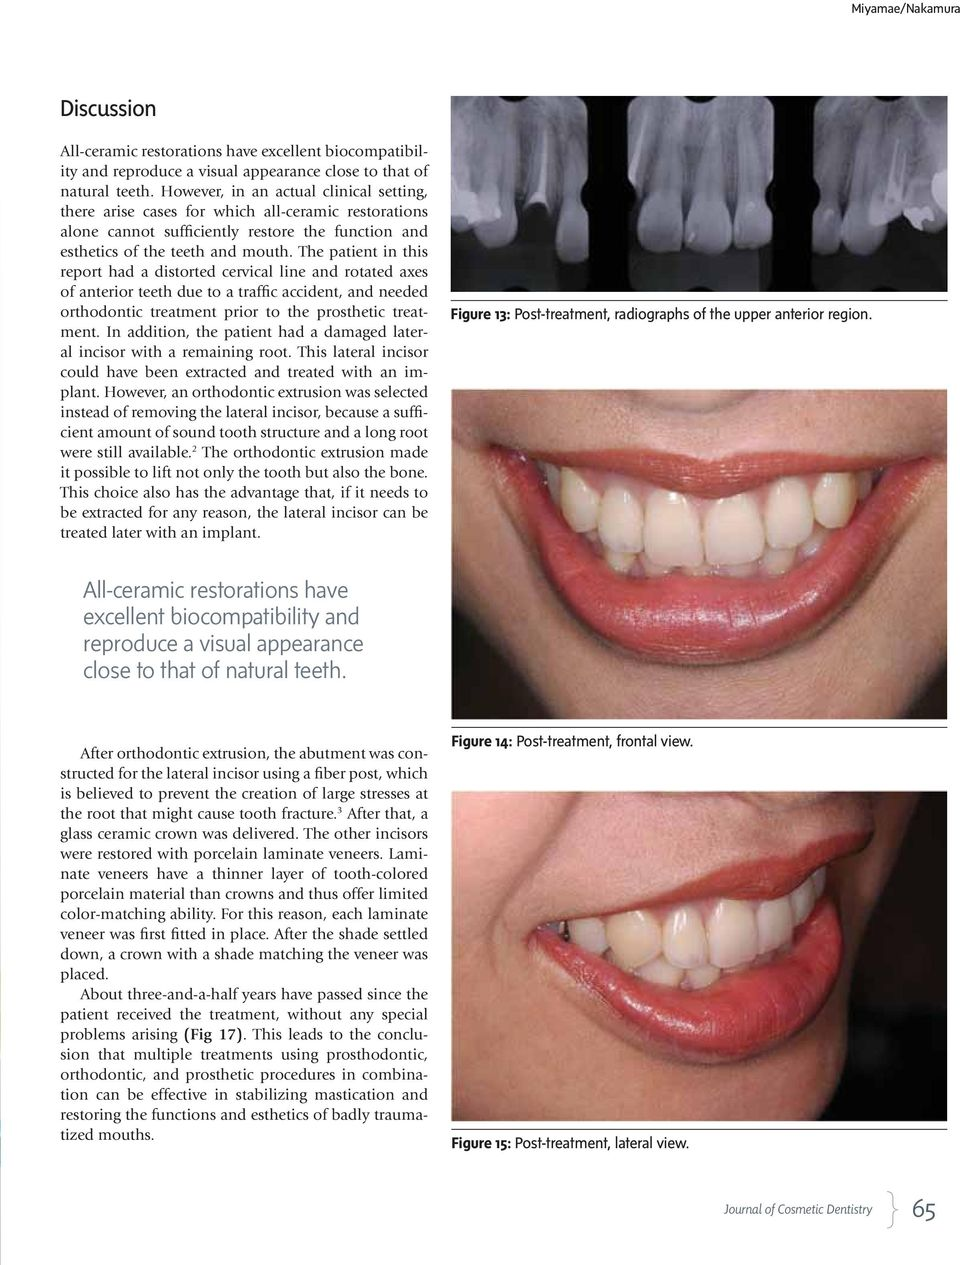 The patient in this report had a distorted cervical line and rotated axes of anterior teeth due to a traffic accident, and needed orthodontic treatment prior to the prosthetic treatment.